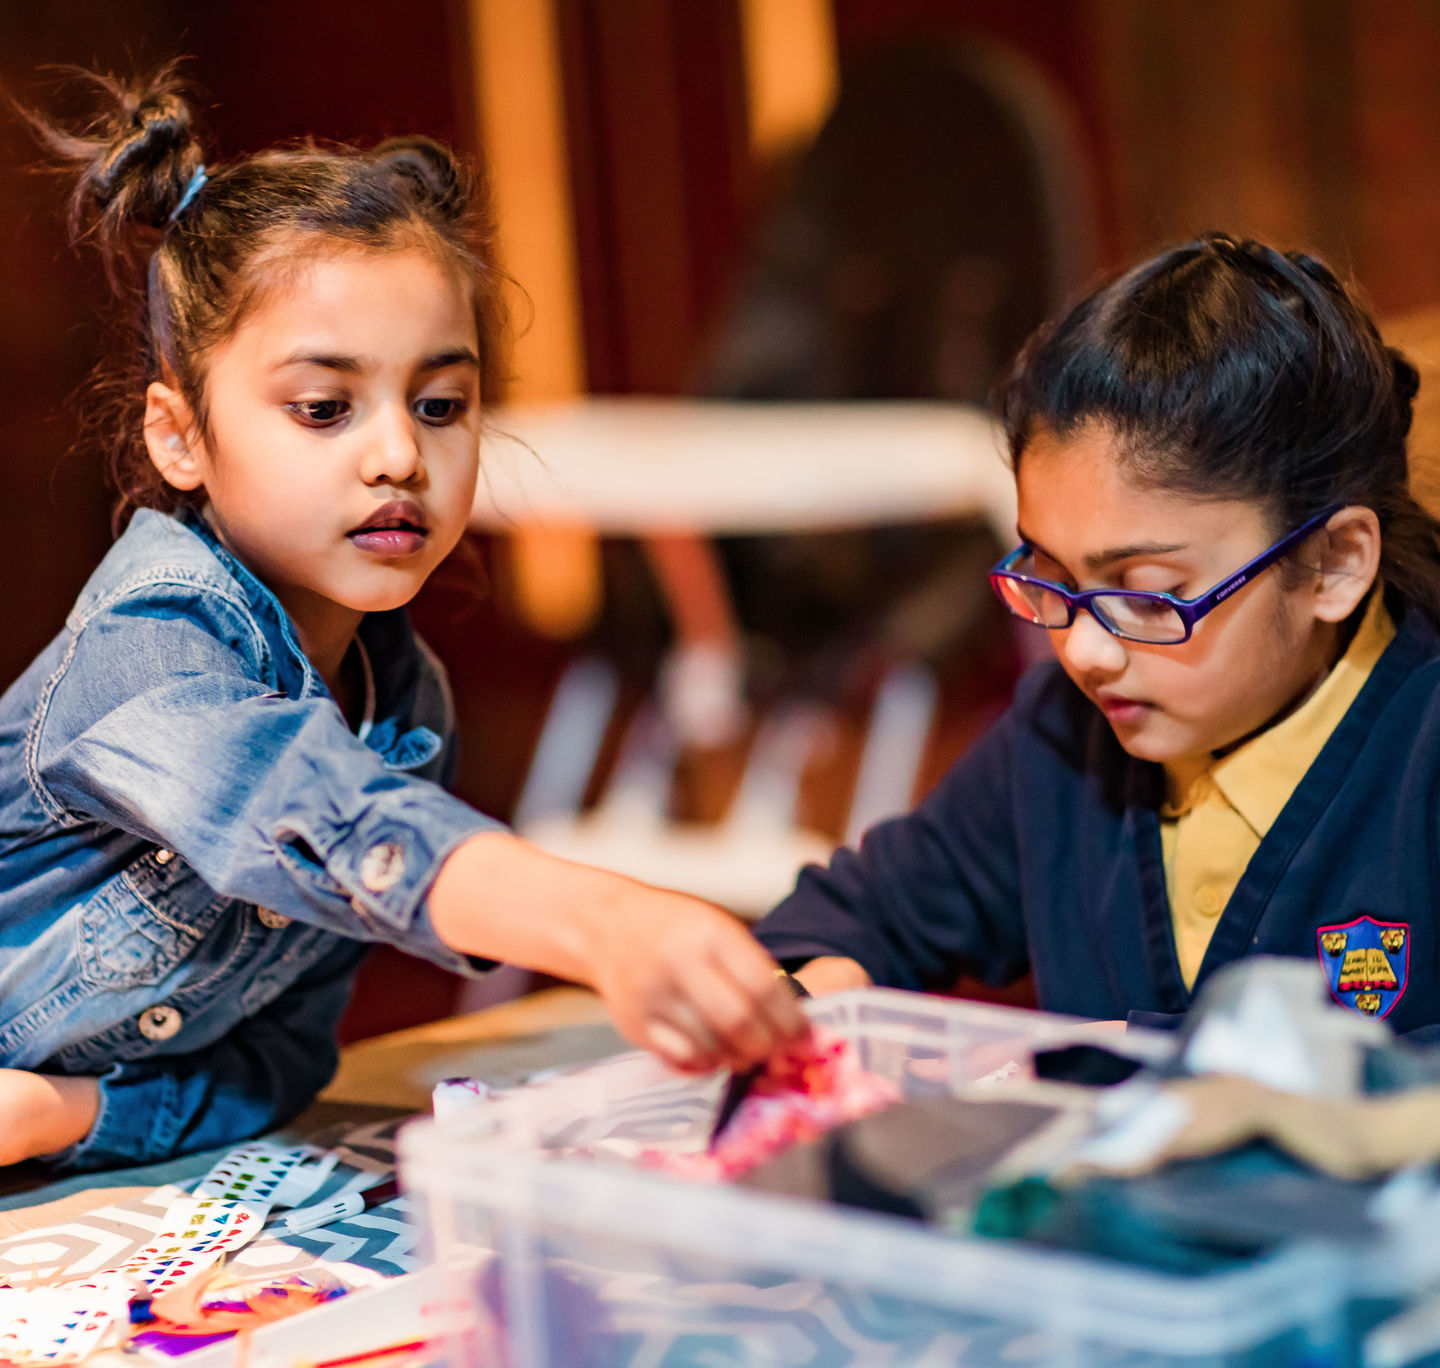 Shakespeare_s Birthday 2019_ Children_s craft activities_ TOP_2019_Photo by Sam Allard _c_ RSC_292485